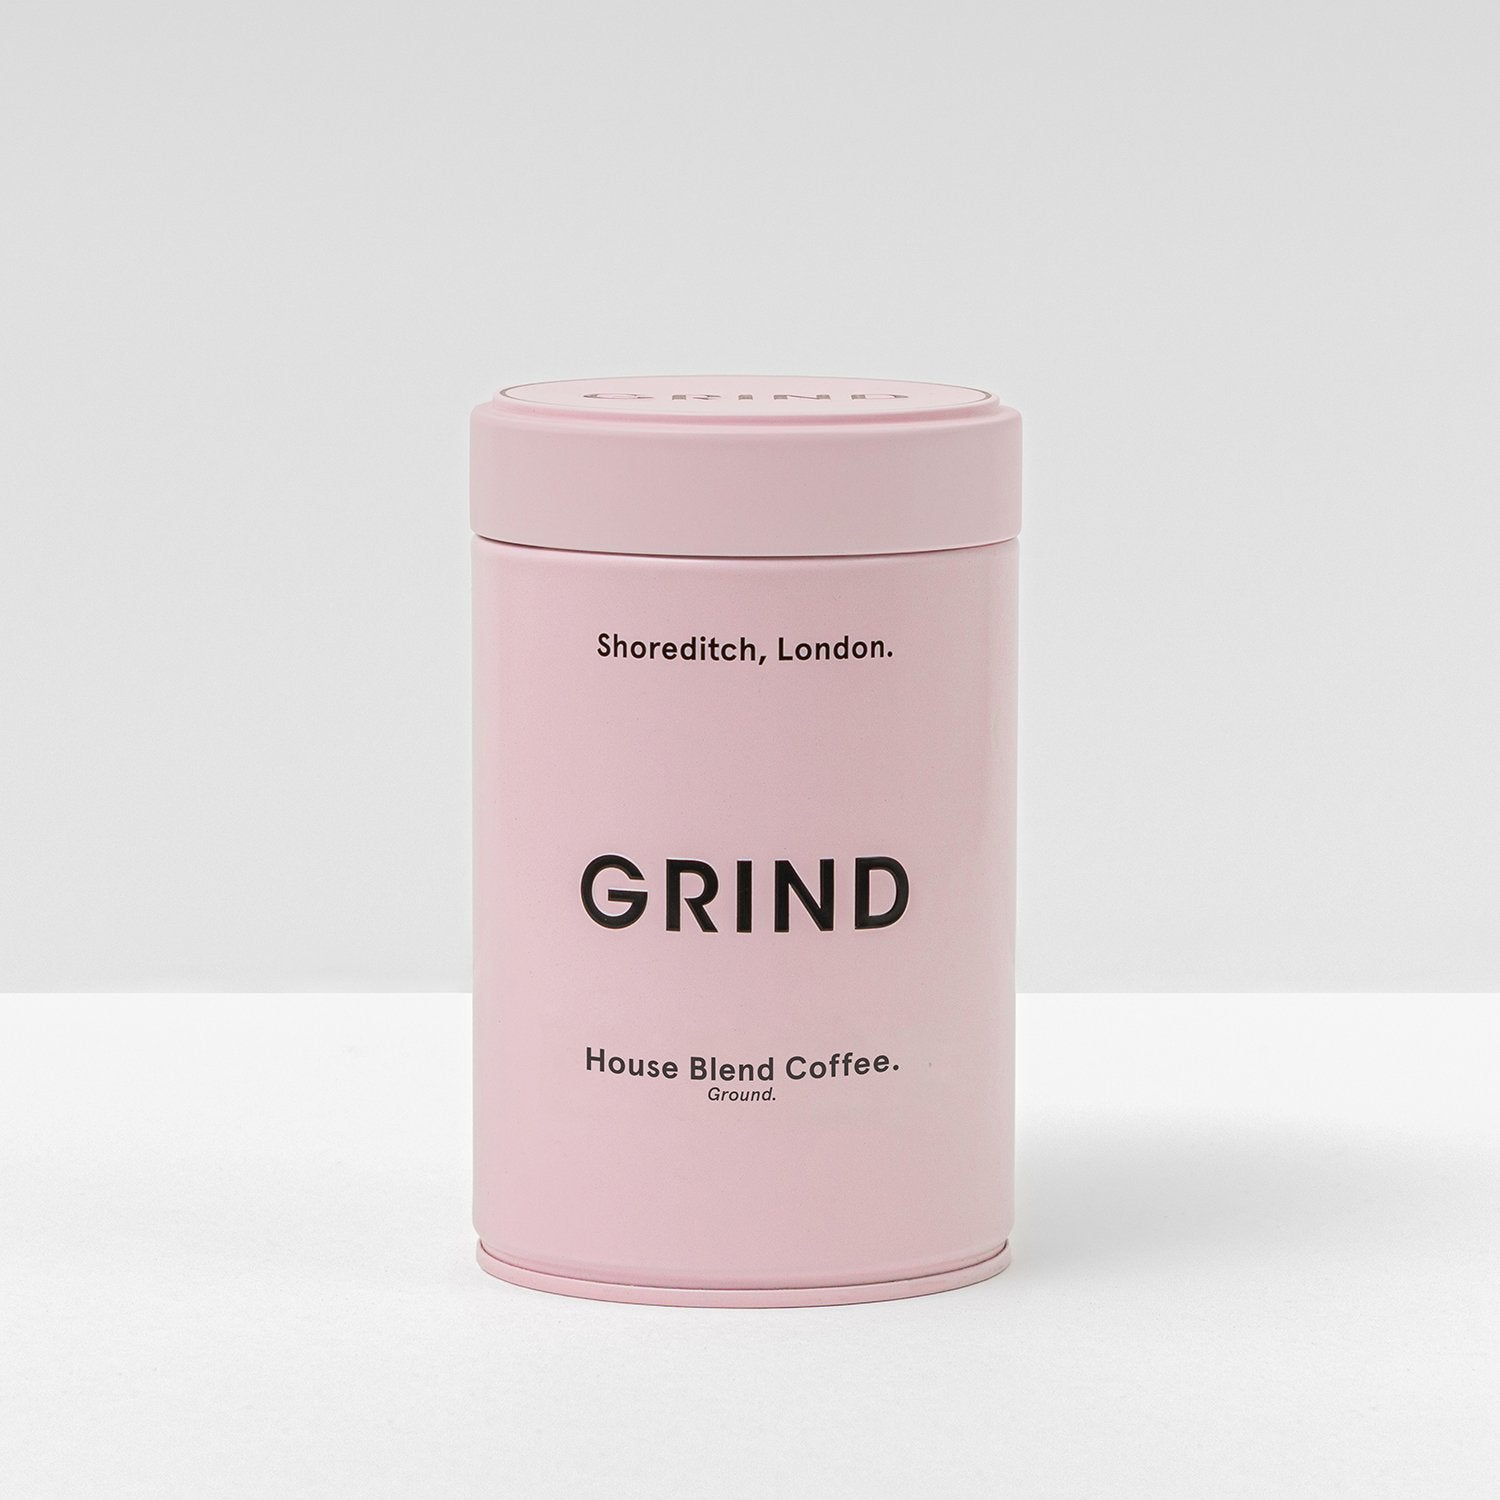 GRIND - GROUND HOUSE BLEND COFFEE